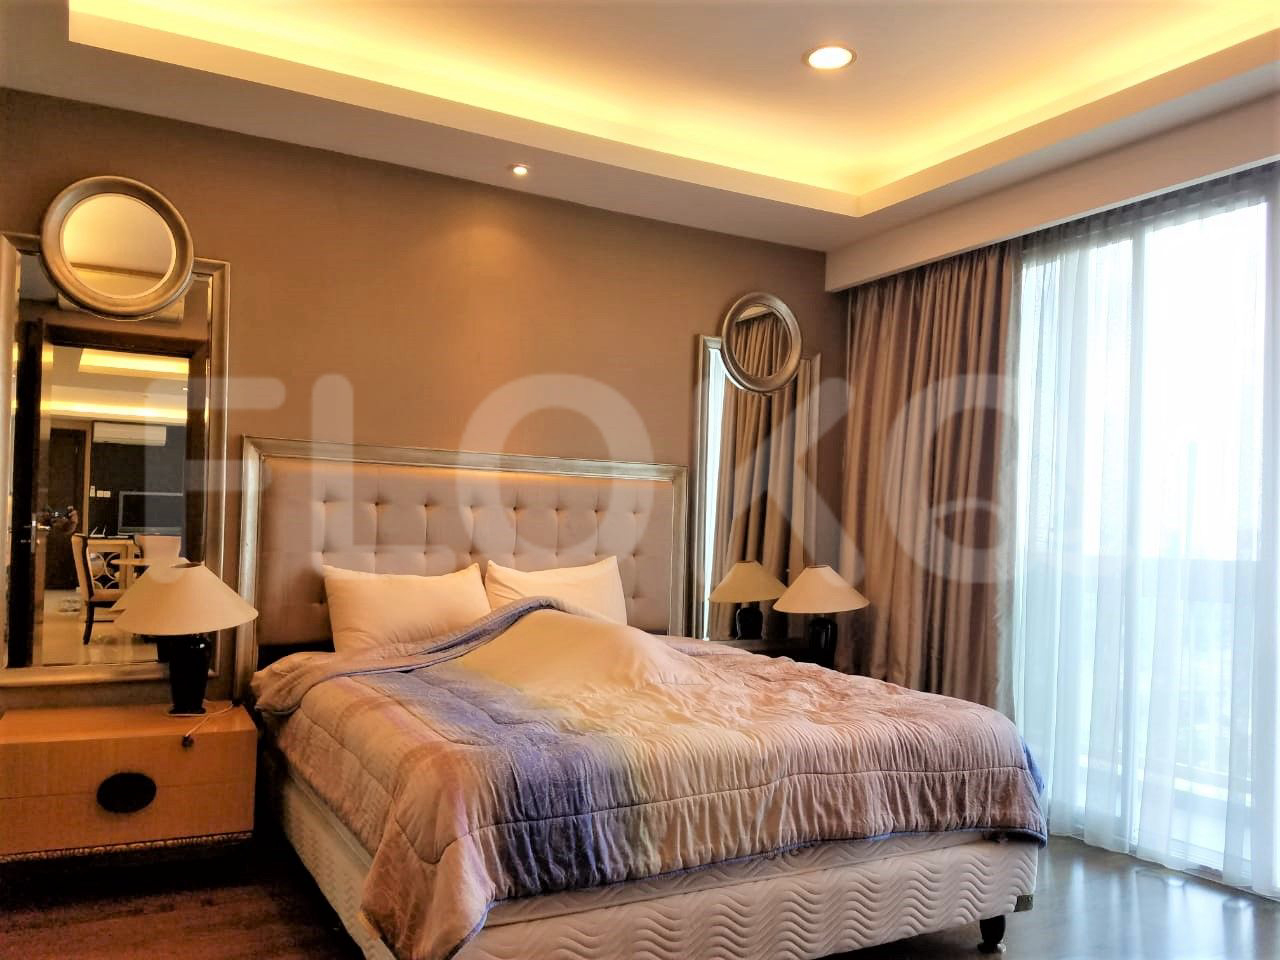 Rent 2 BR on 10th Floor, Pay Half Yearly, The Mansion at Kemang